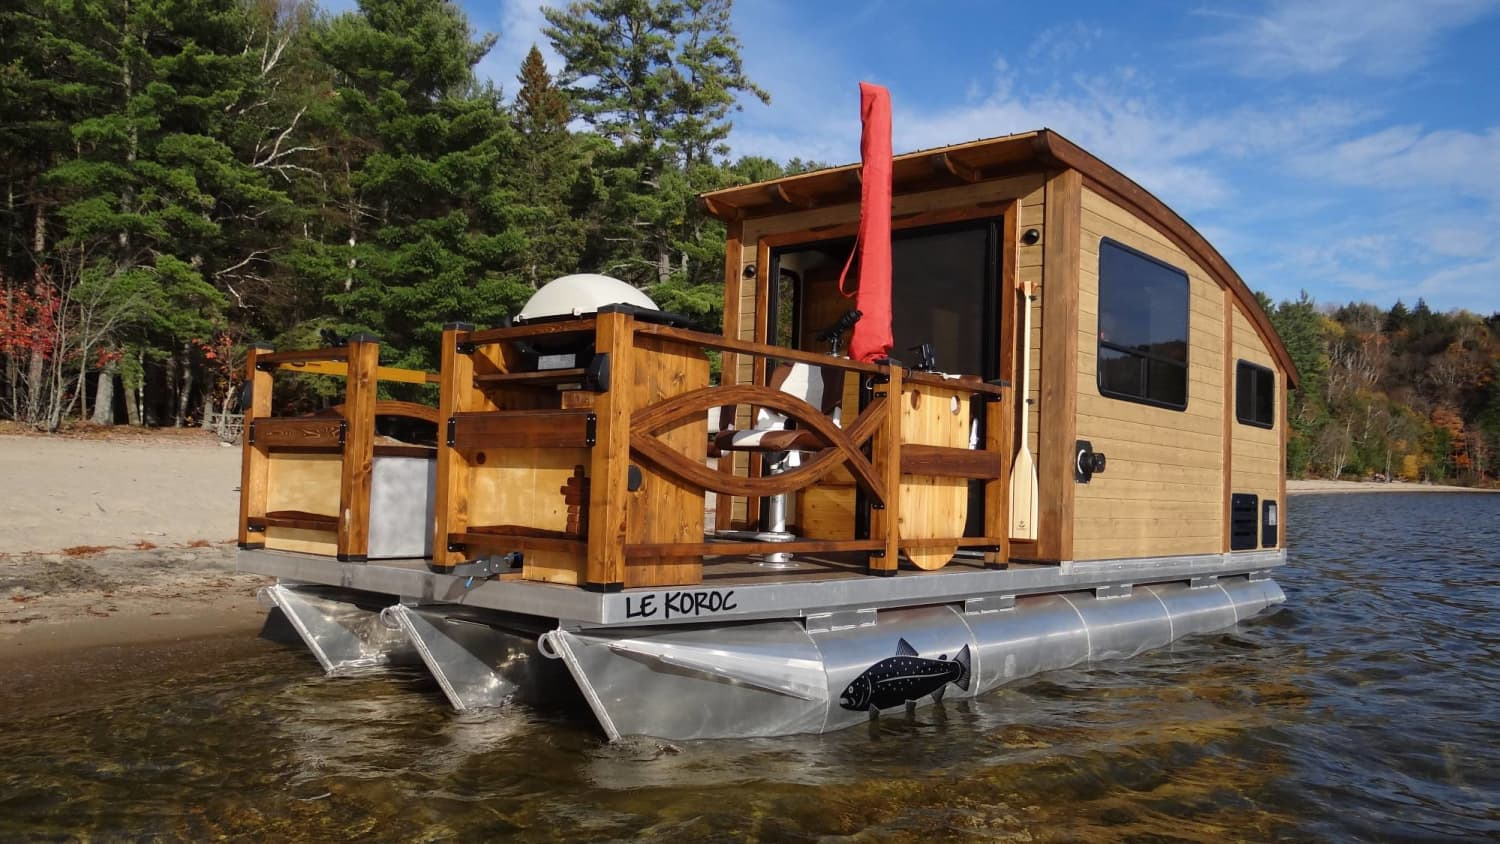 This Tiny Canadian Houseboat is a Solar-Powered, Off-Grid Craftsman Dream